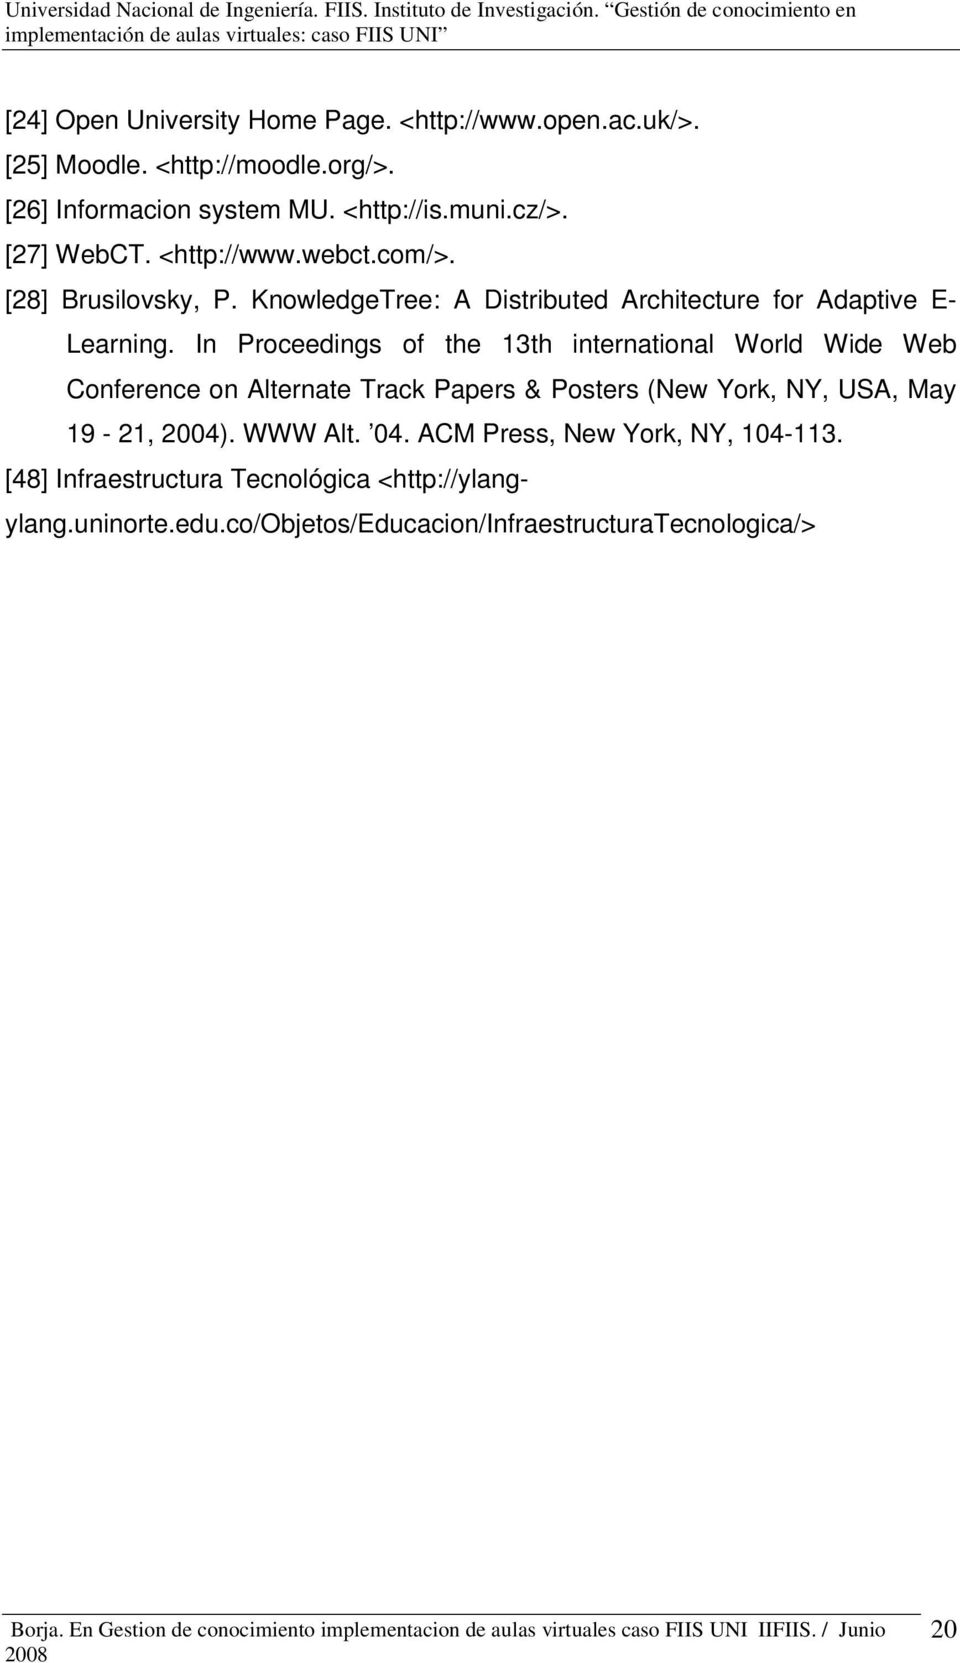 In Proceedings of the 13th international World Wide Web Conference on Alternate Track Papers & Posters (New York, NY, USA, May 19-21, 2004).